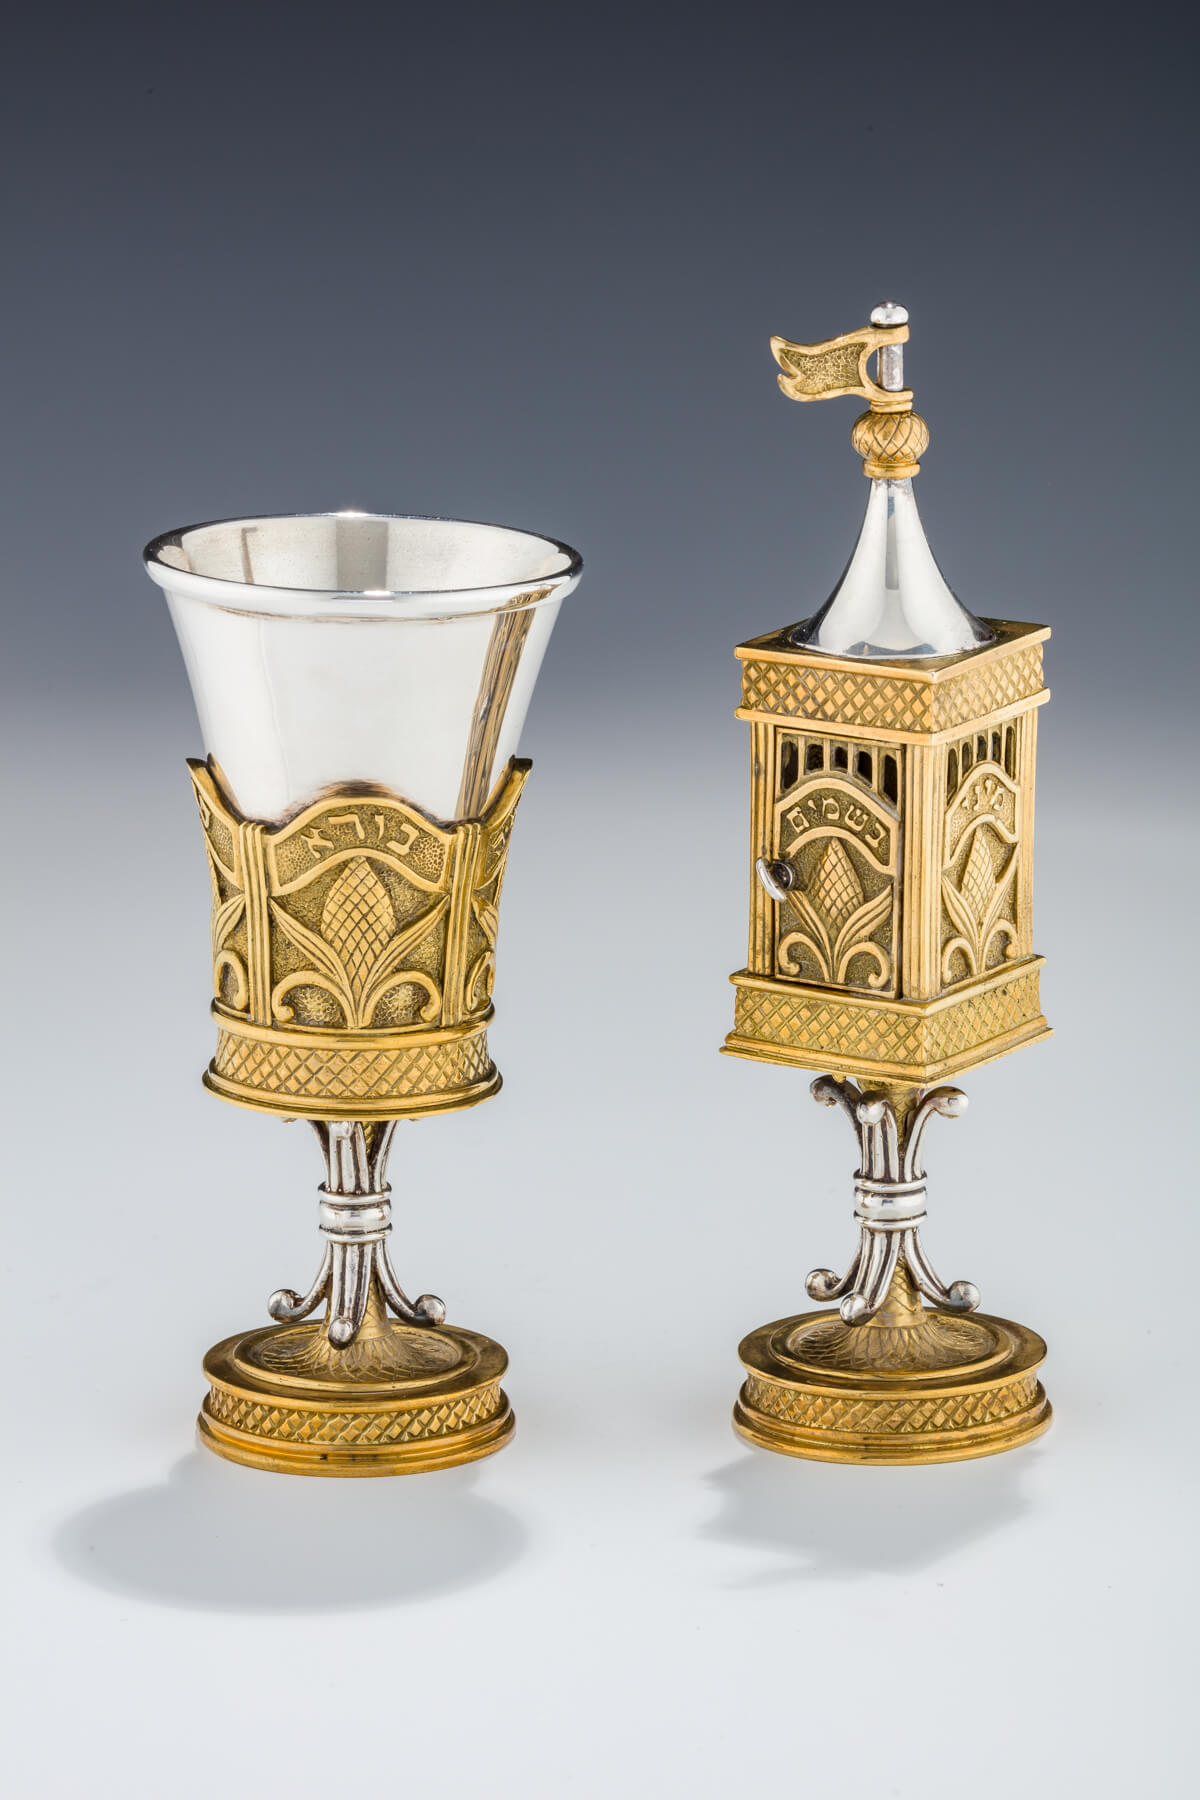 143. A Sabbath Set by Swed Master Silversmiths for the UJA Prime Minister's Council